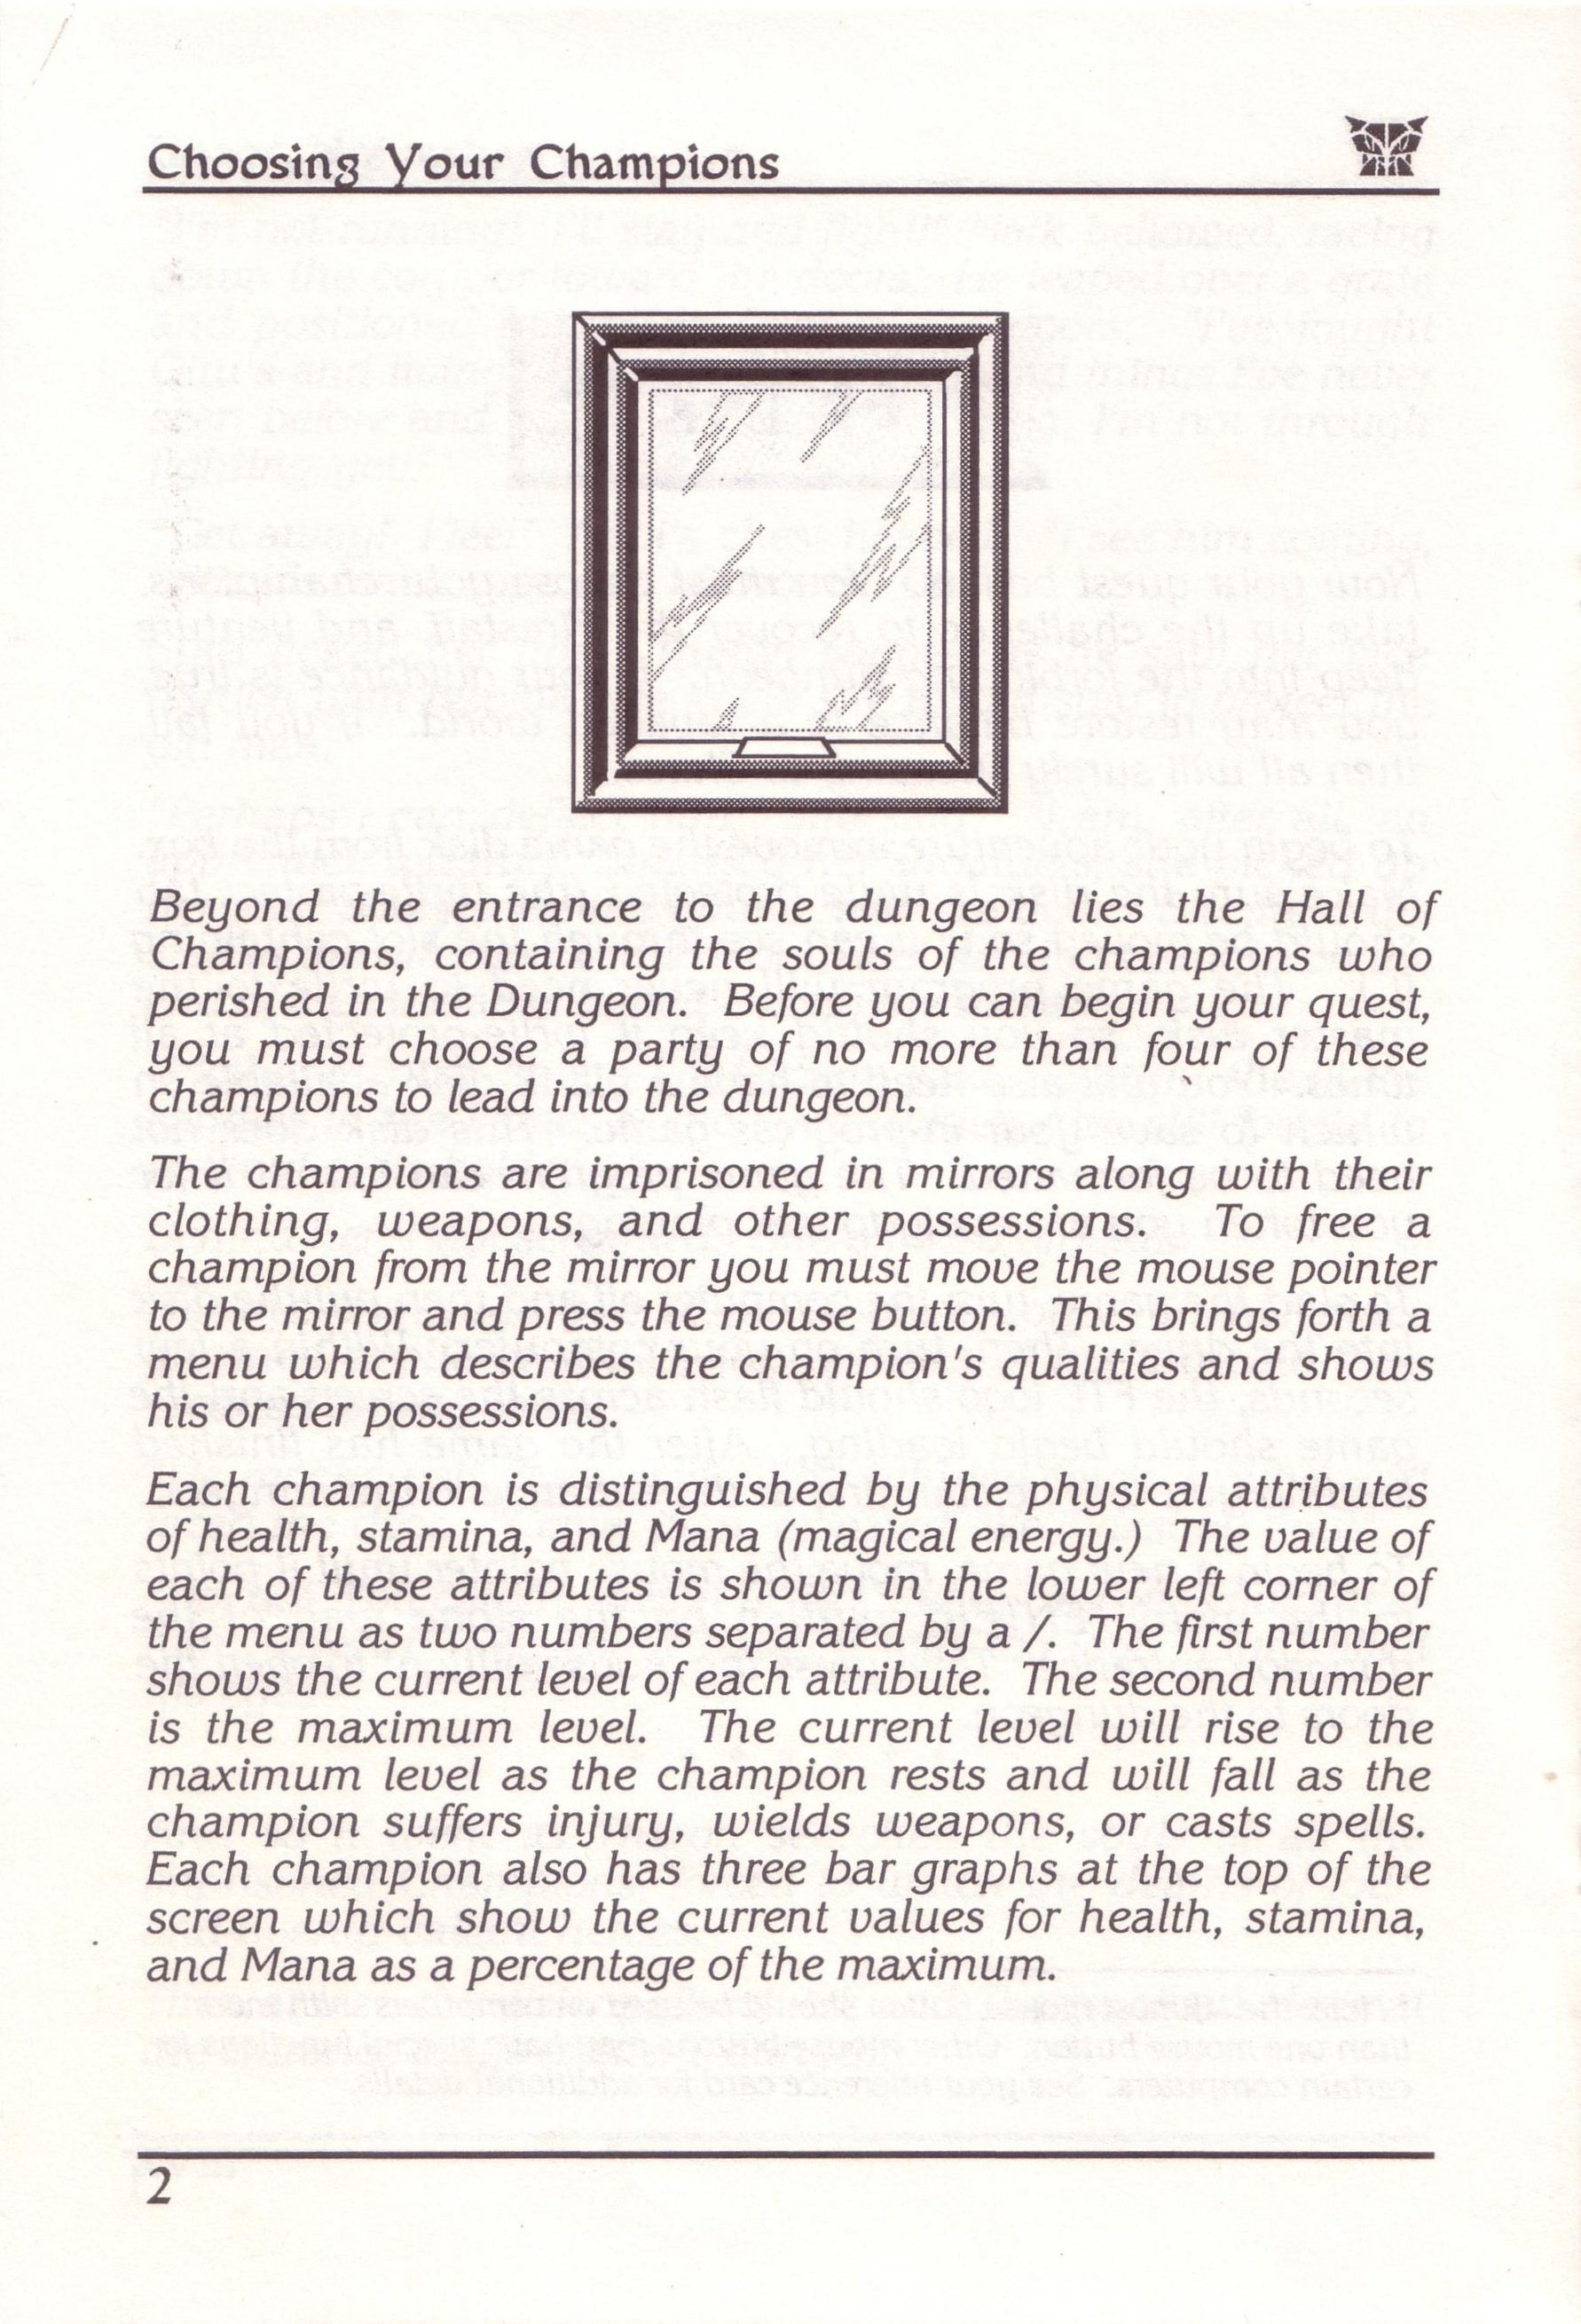 Dungeon Master for PC with FTL Sound Adapter (US Release) - Manual Page 26